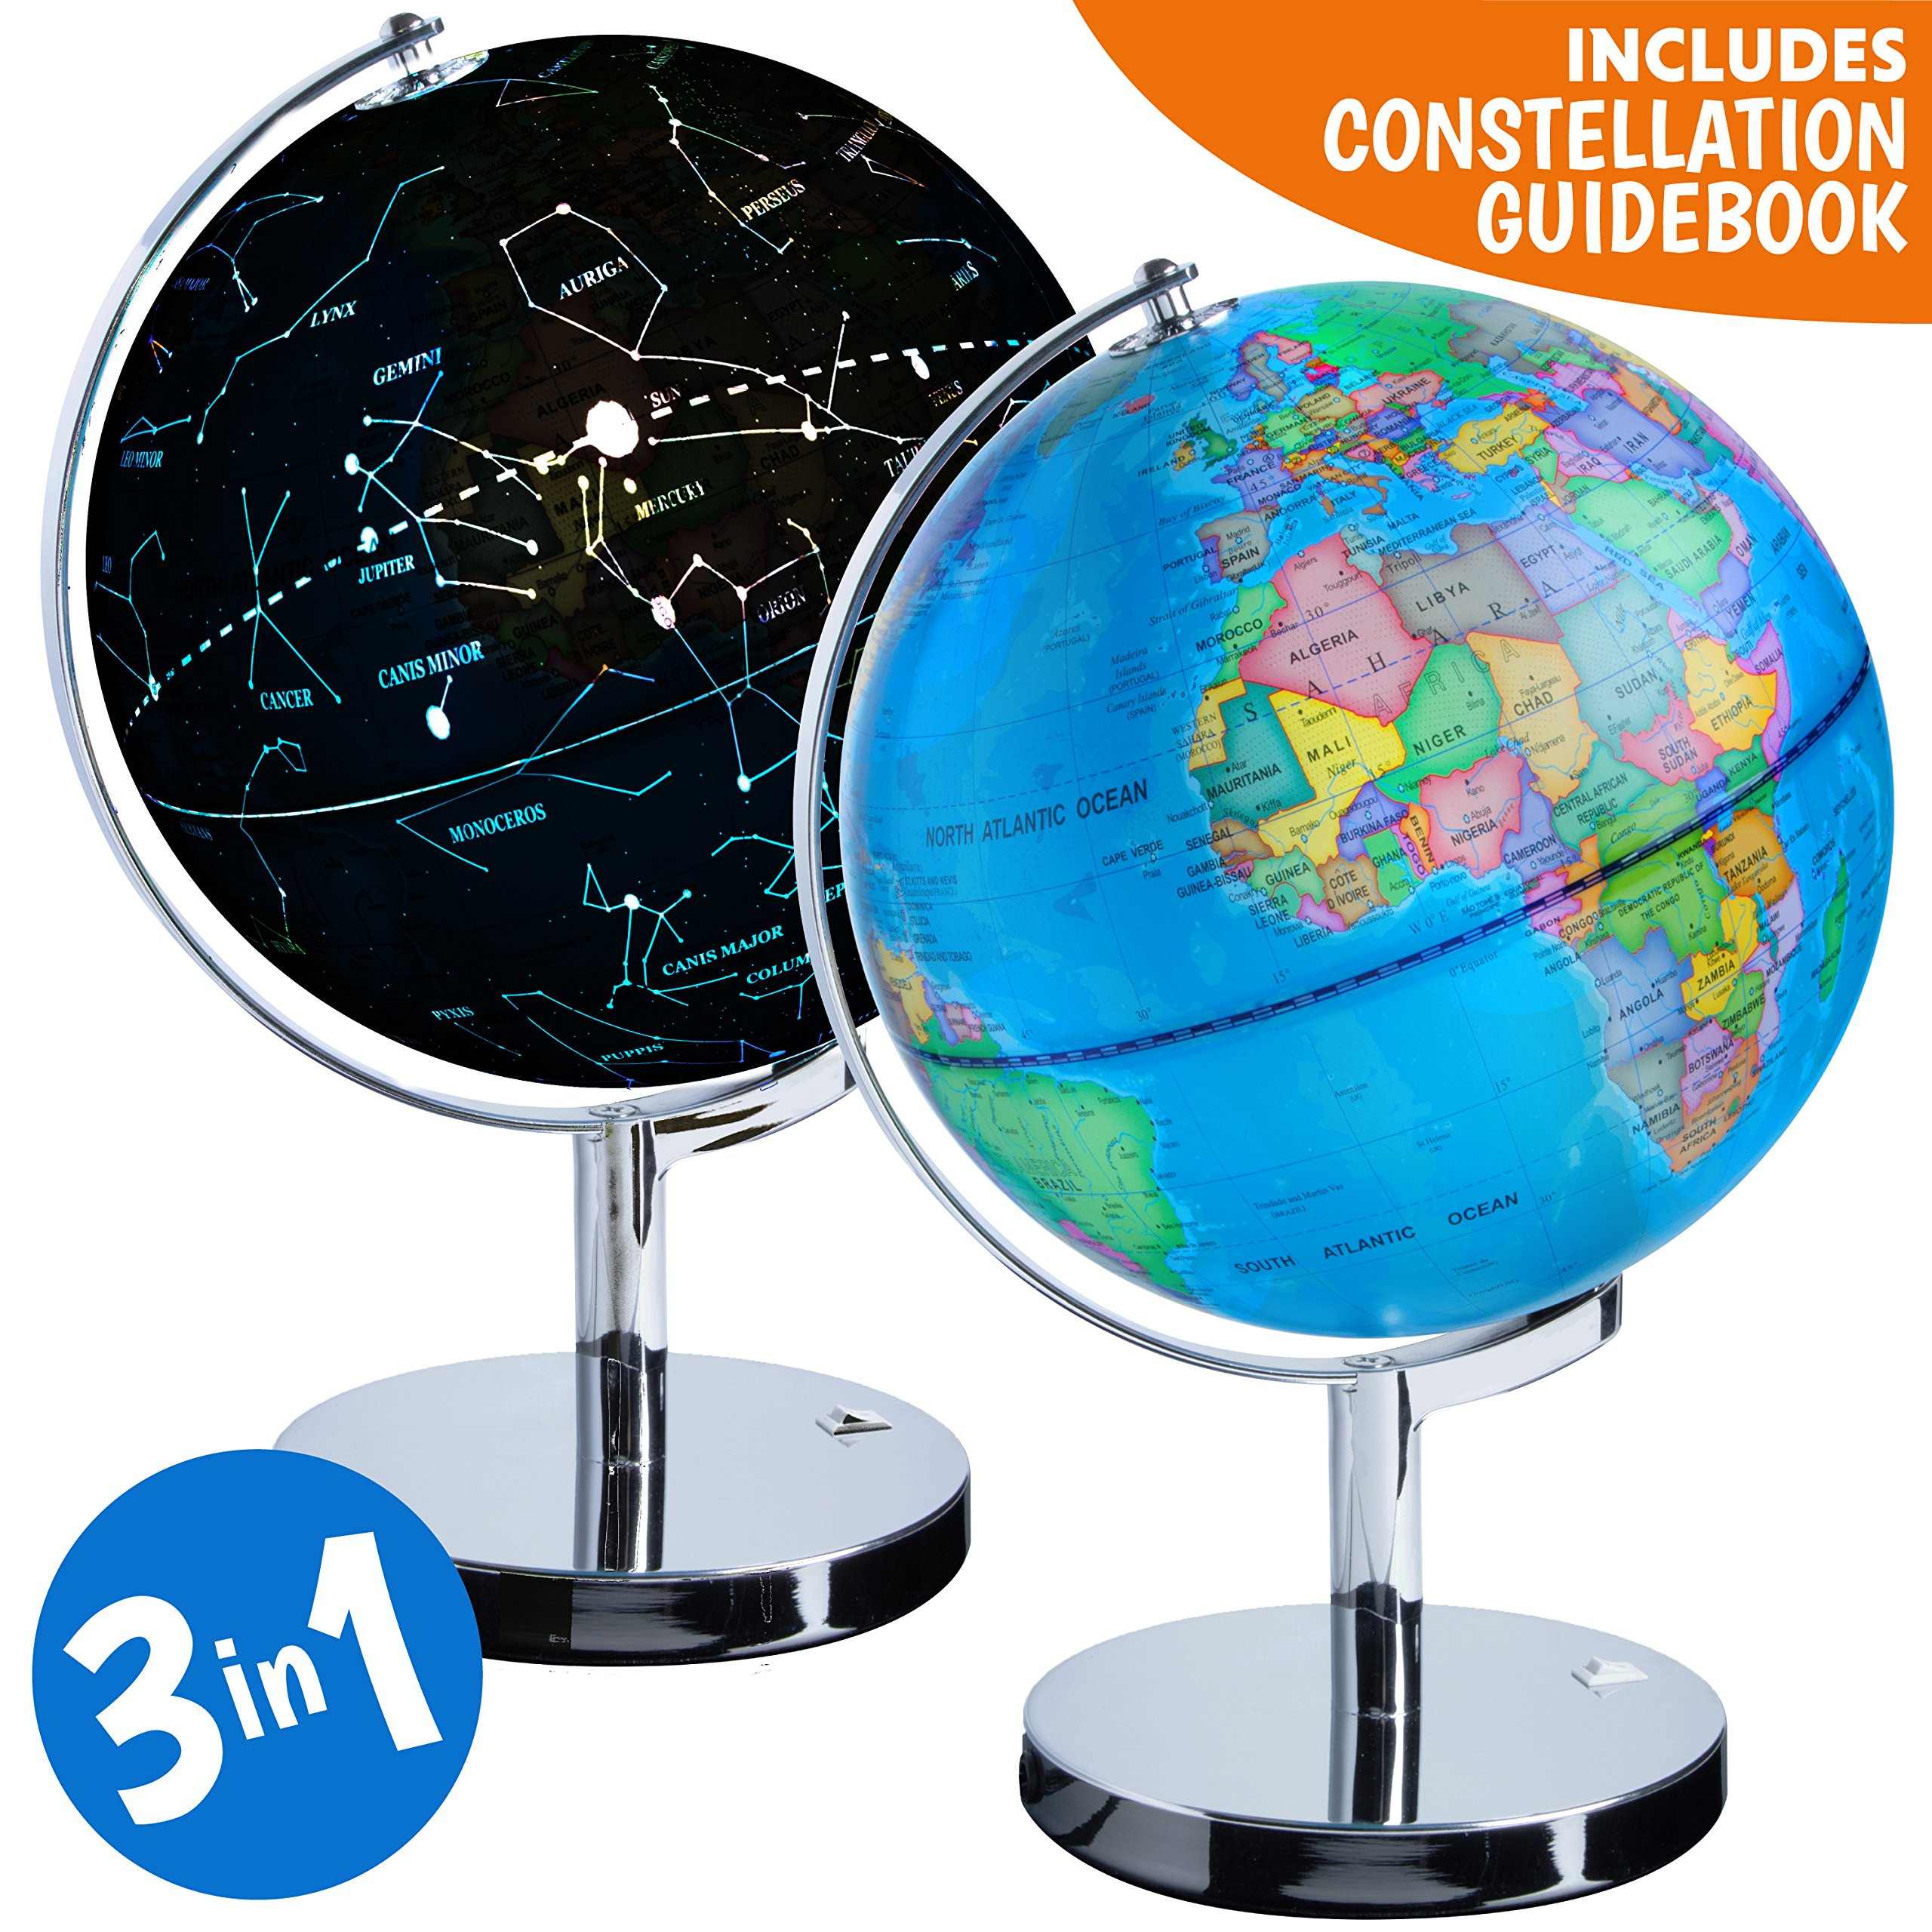 Give Kids The World Map.3 In 1 Illuminated World Globe Nightlight And Constellation Globe